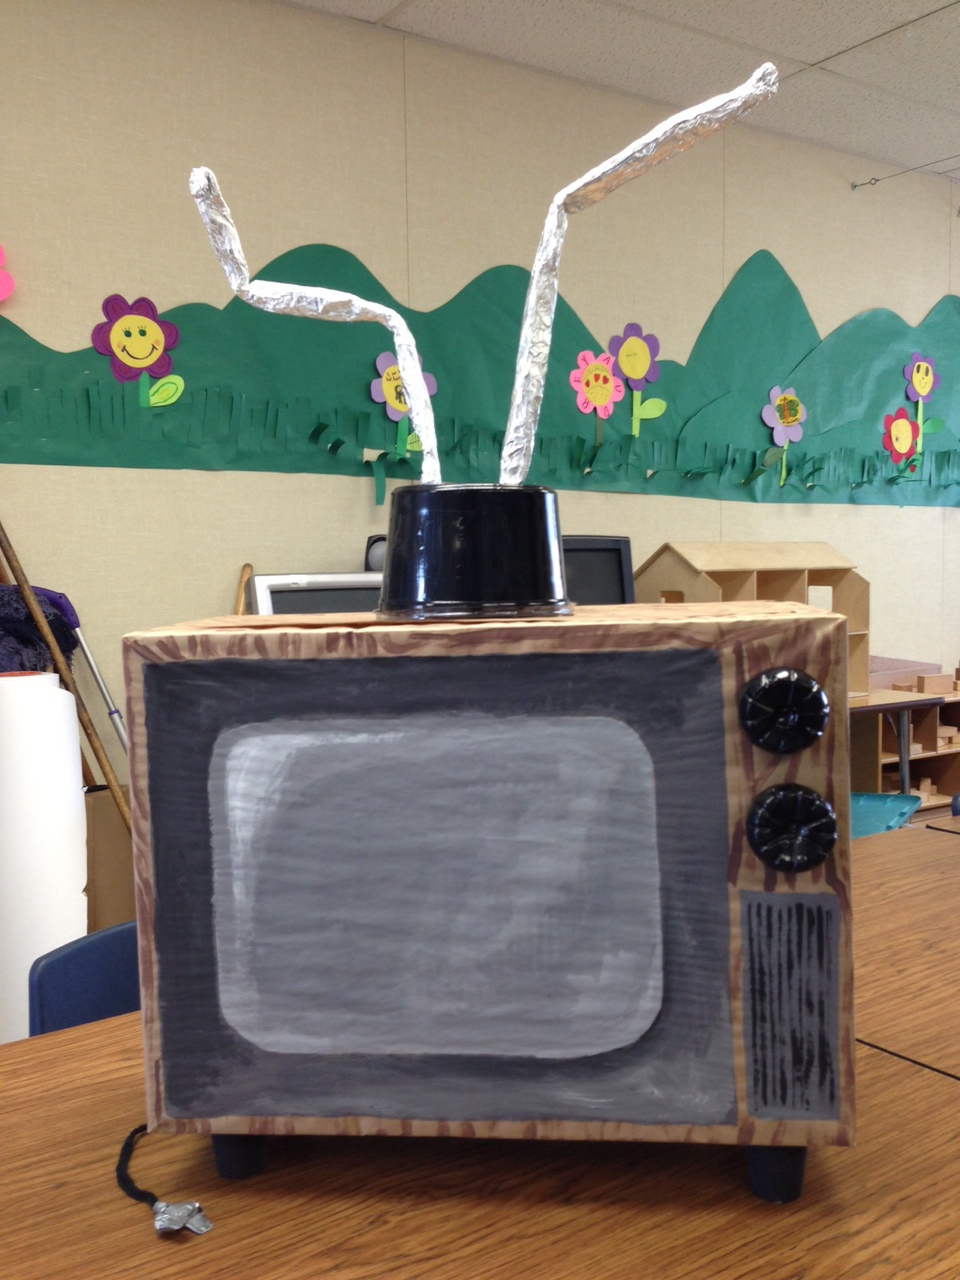 This is a cardboard TV i was asked to make for no screens week.  I don't know what has become of it I suggested they used it as a pinata and have TV Guide pages come out.